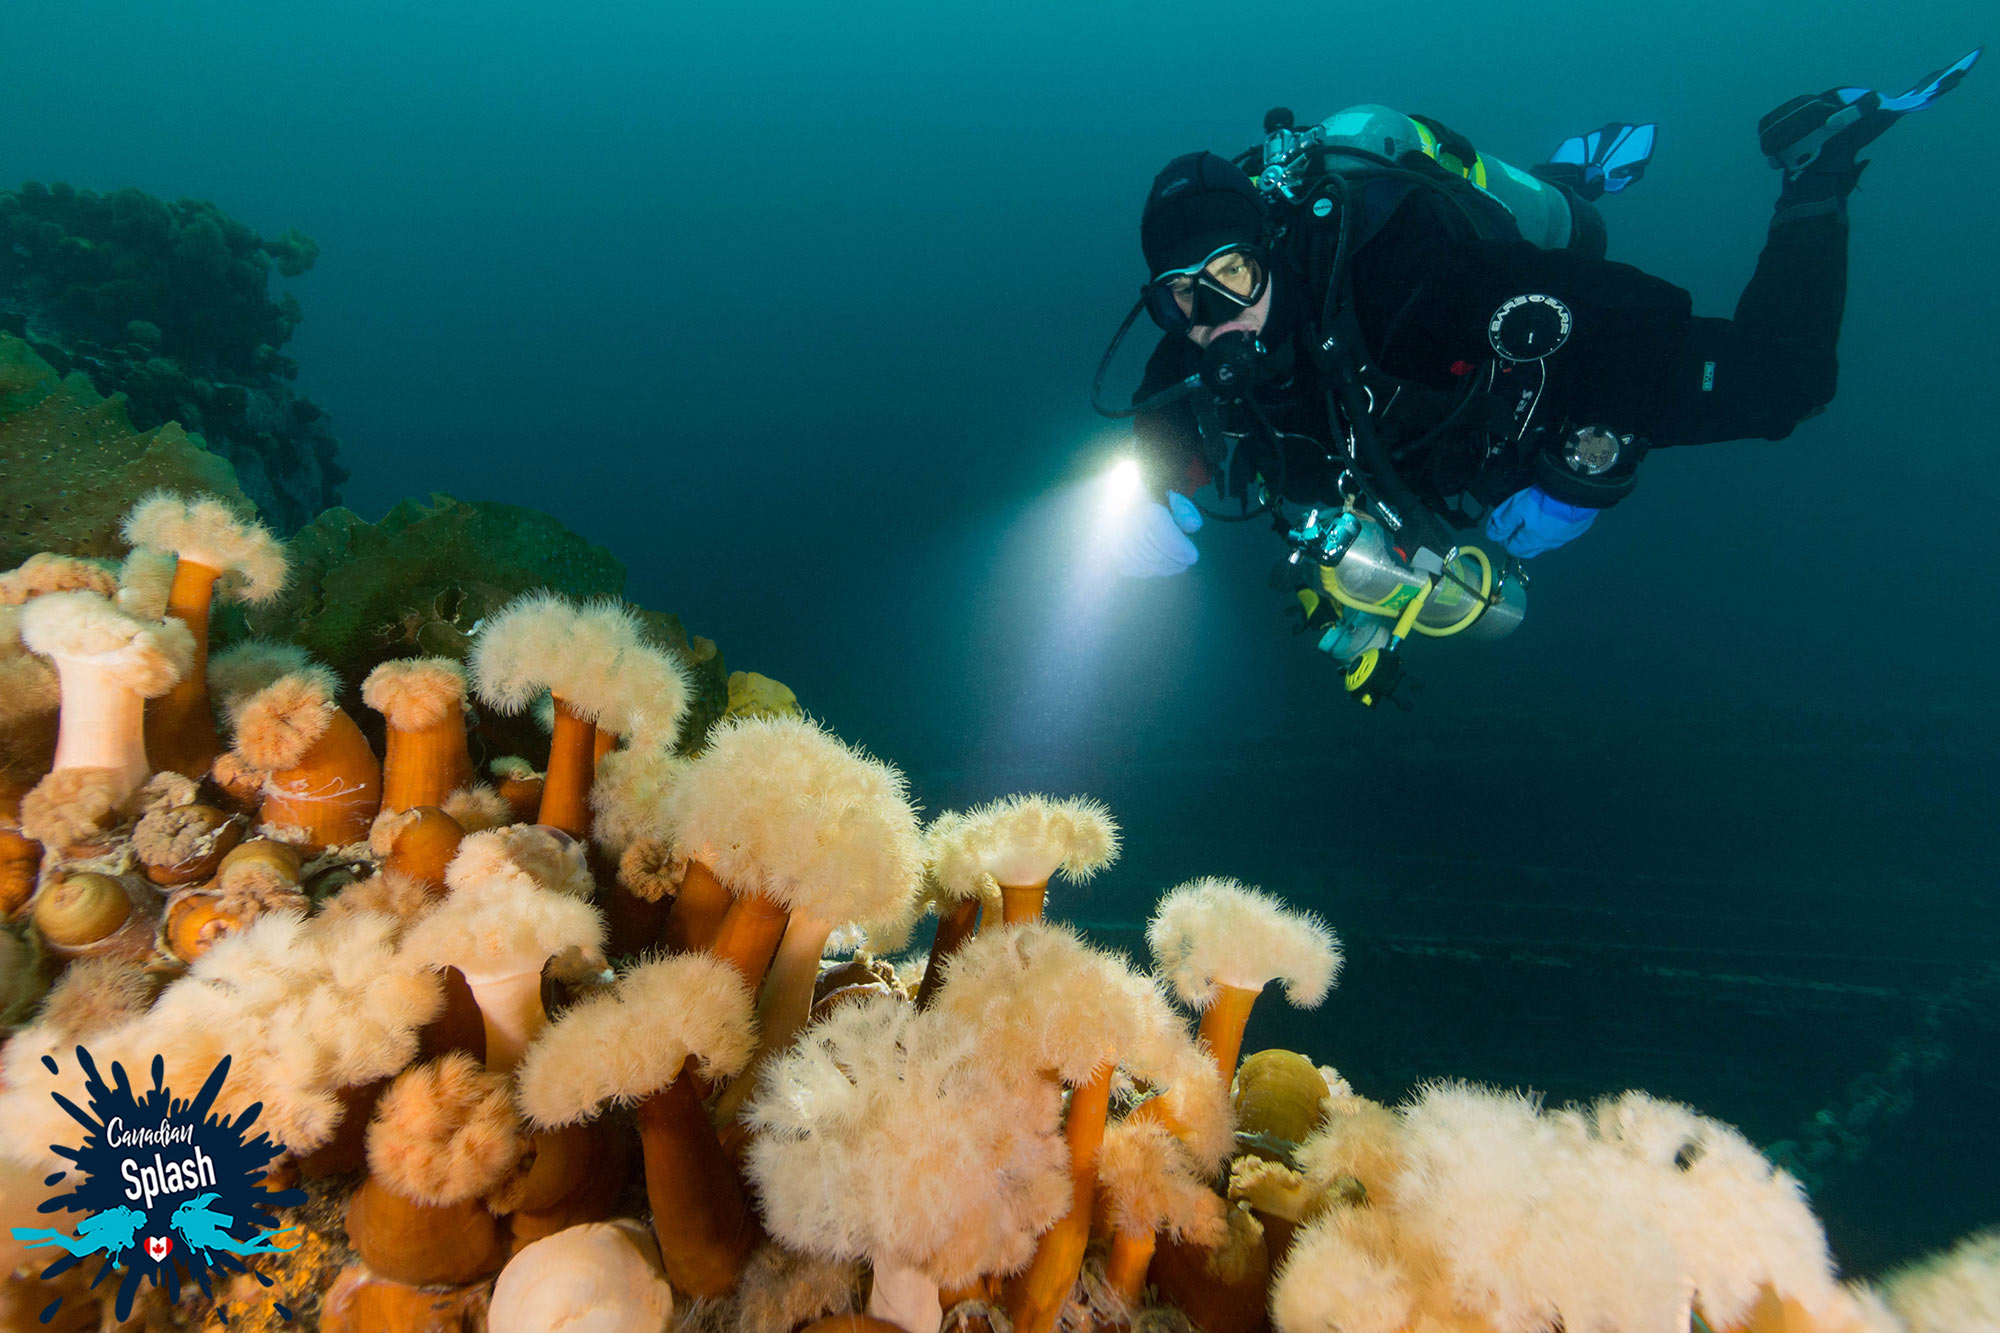 Joey Lighting Up Aneomnes On The Shipwrecks In Newfoundland, Scuba Diving Canada